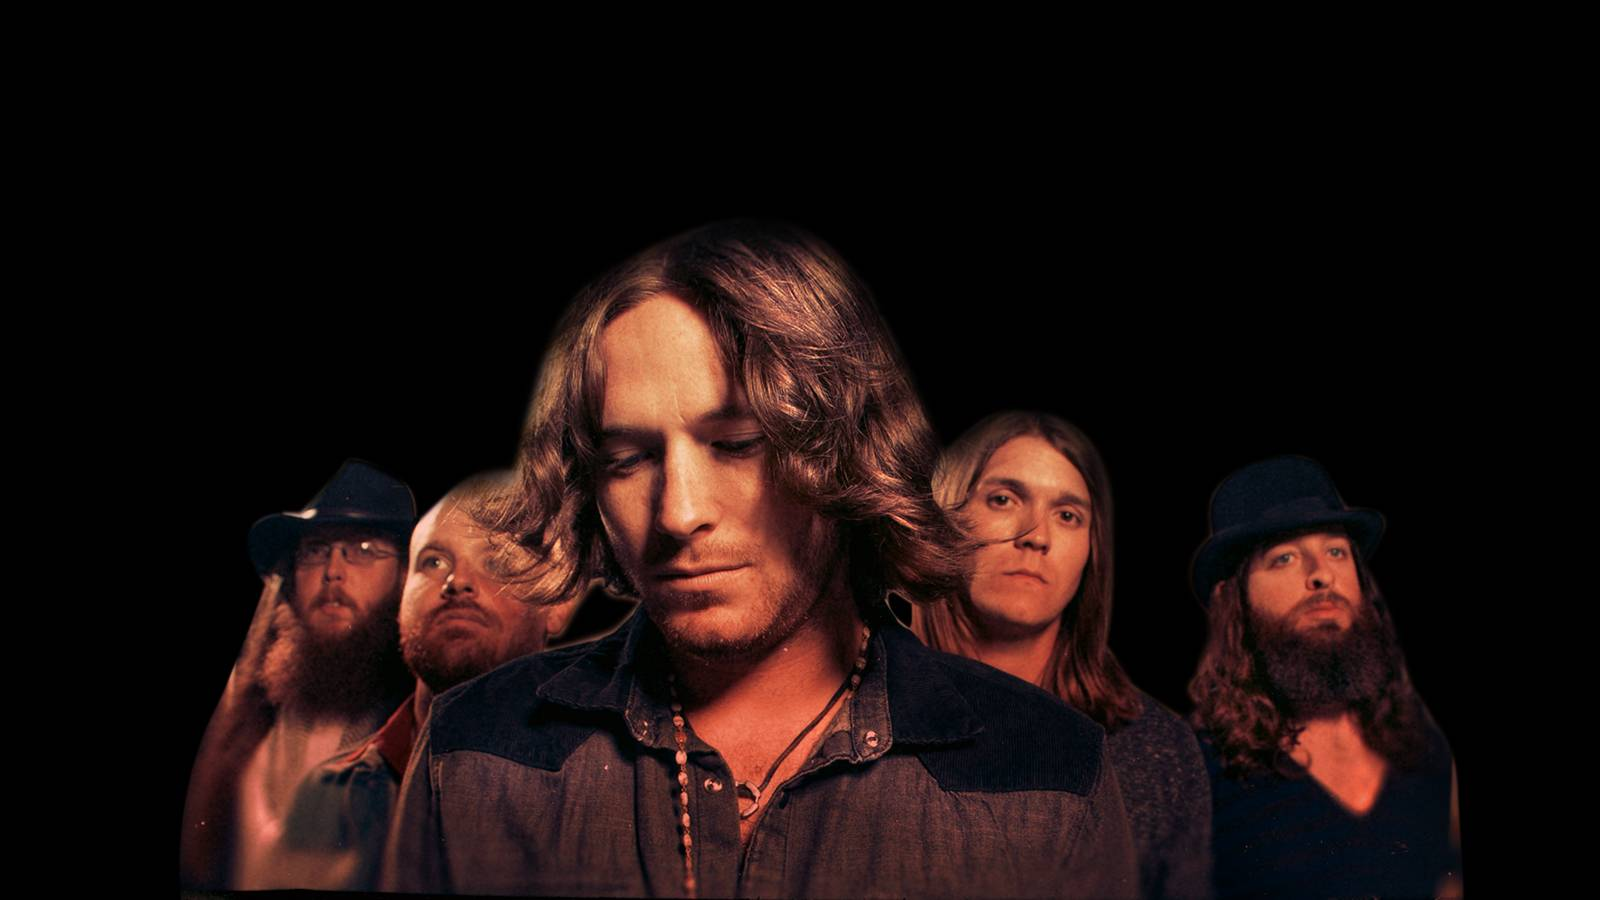 Whiskey Myers (Rescheduled from 5/15)